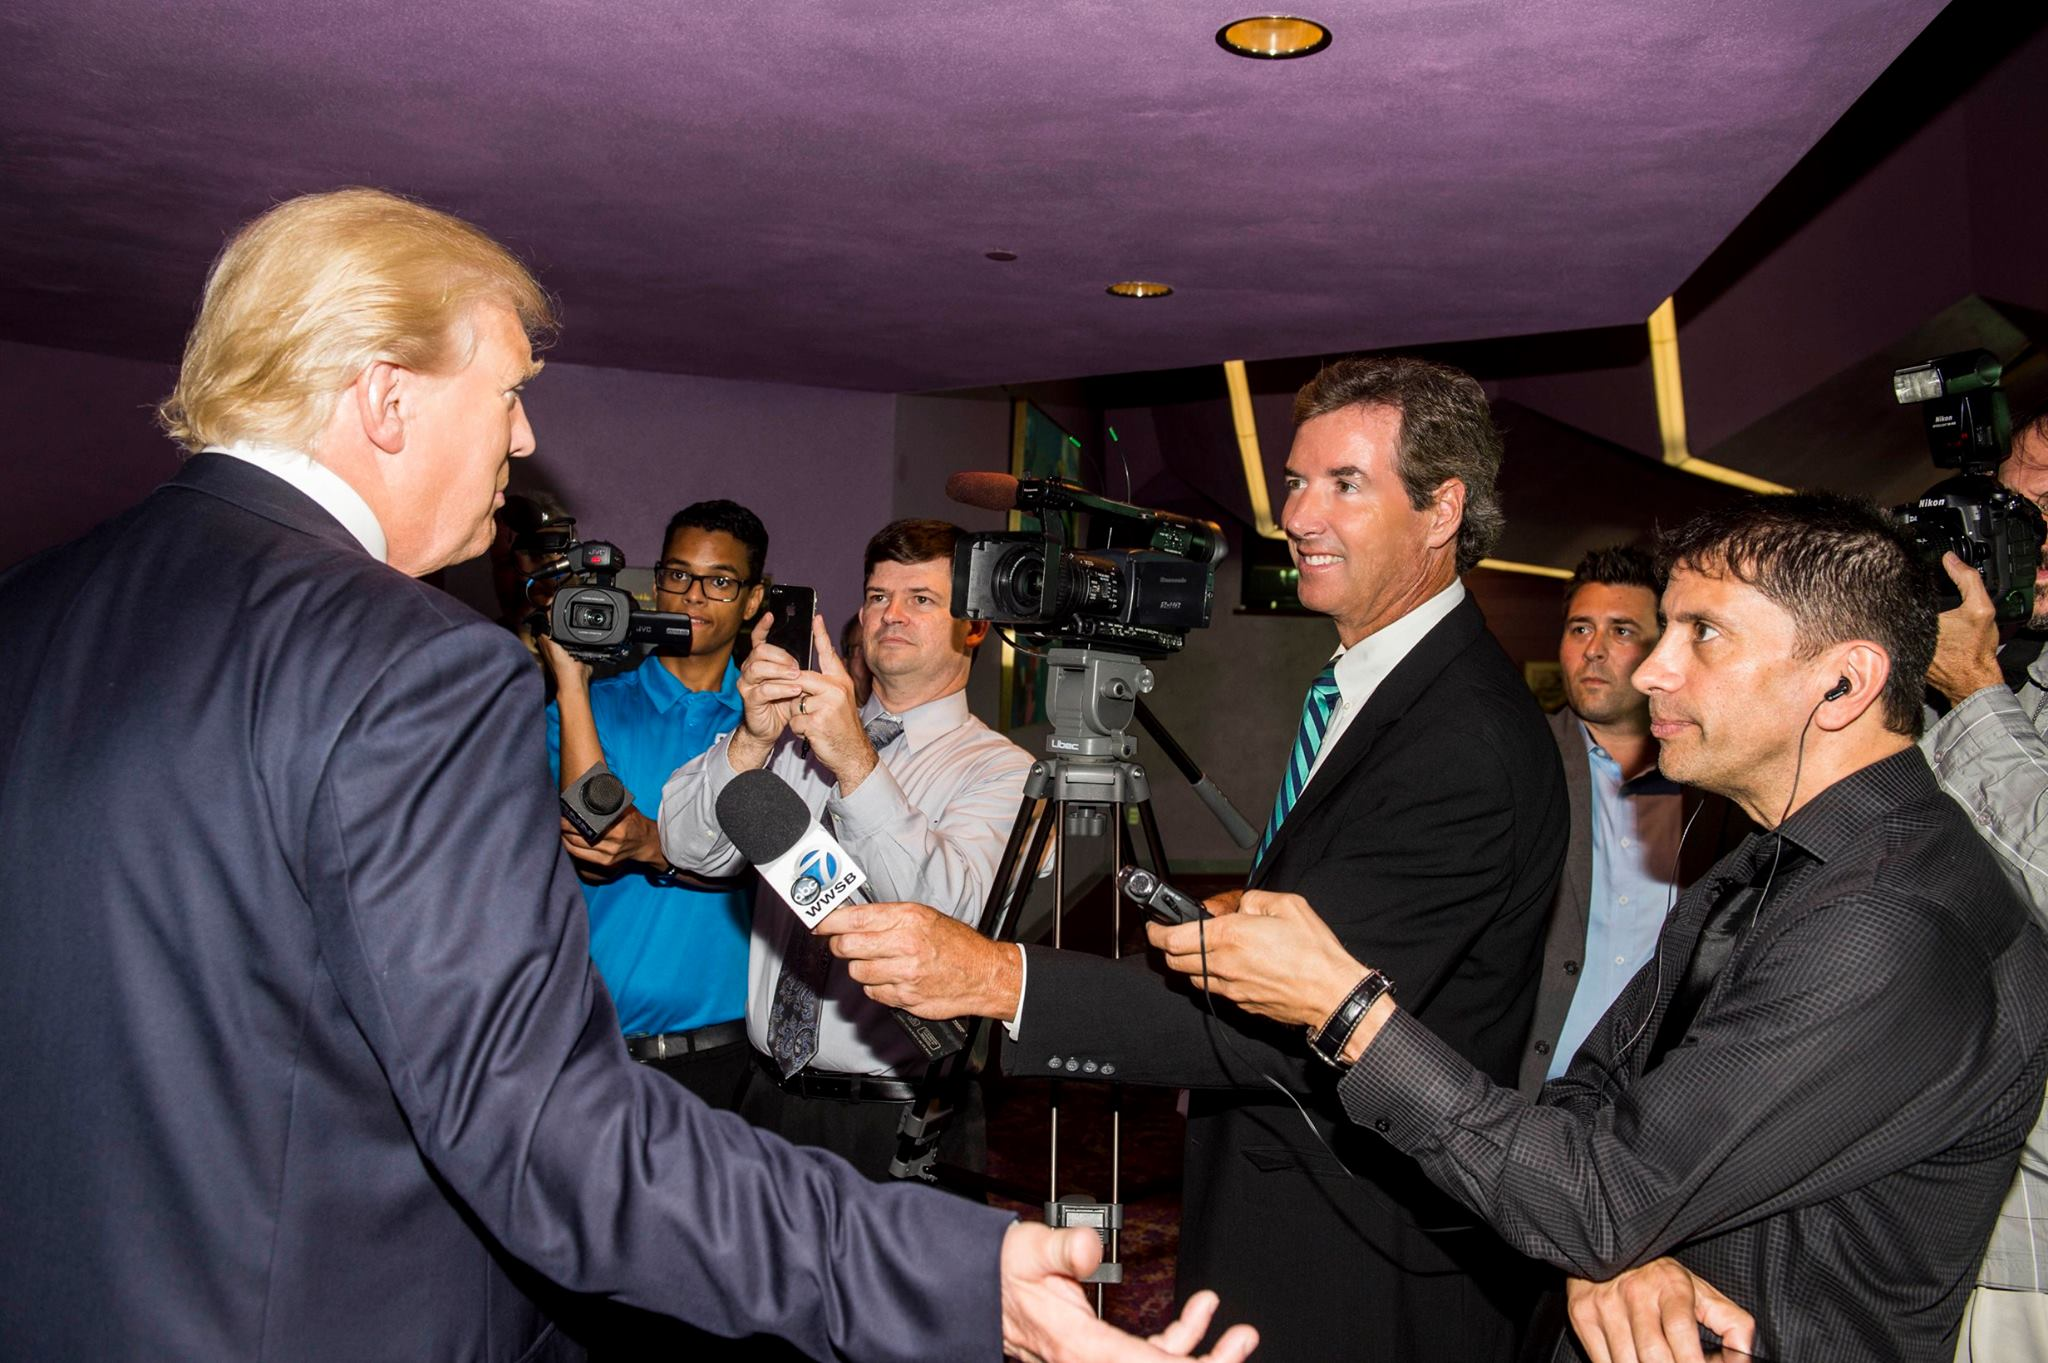 Ray Collins interviewing Donald Trump